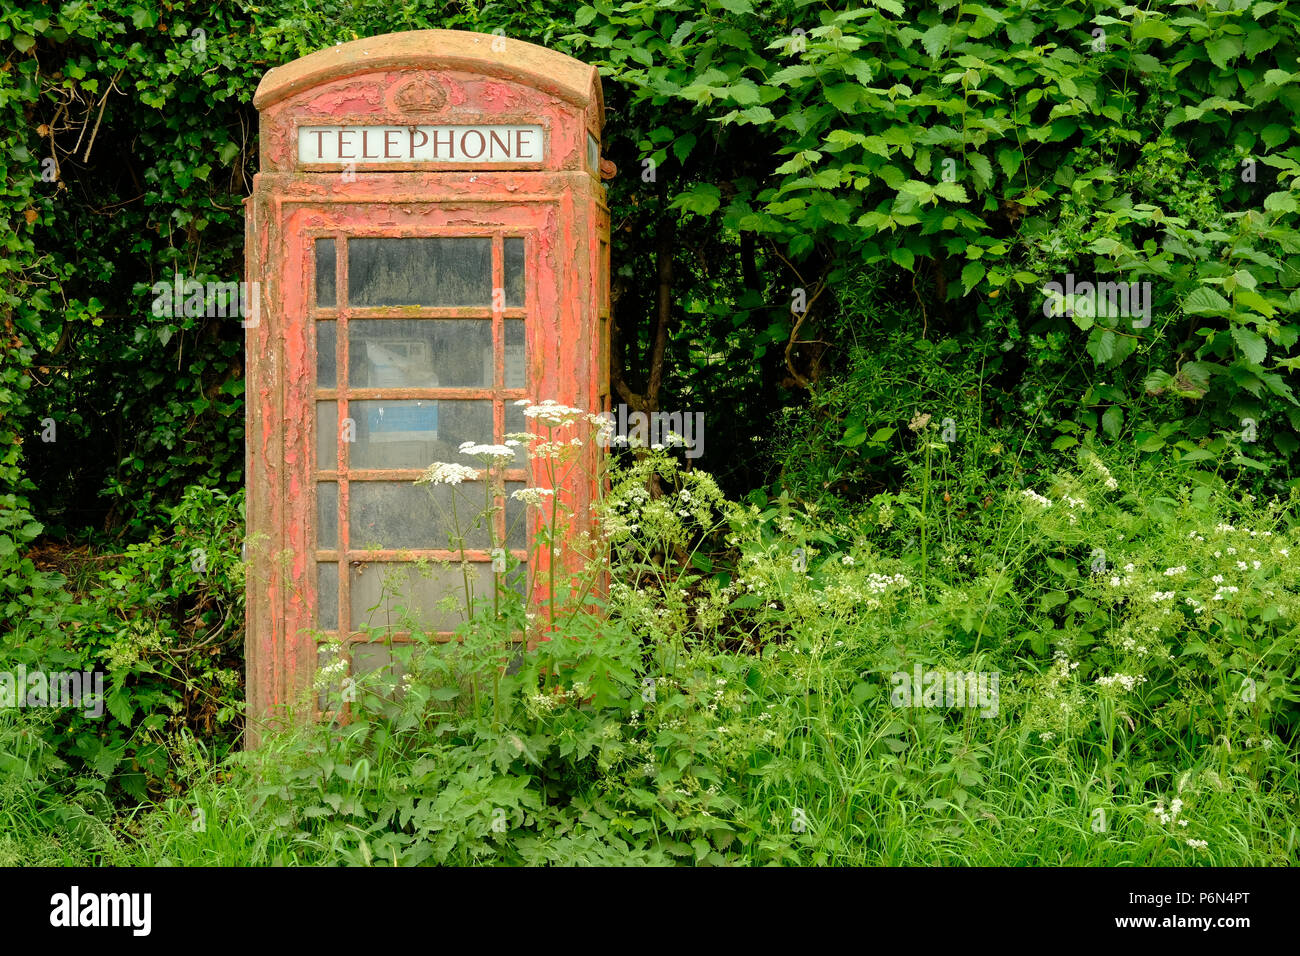 Disused red telephone kiosk in Herefordshire, England - Stock Image